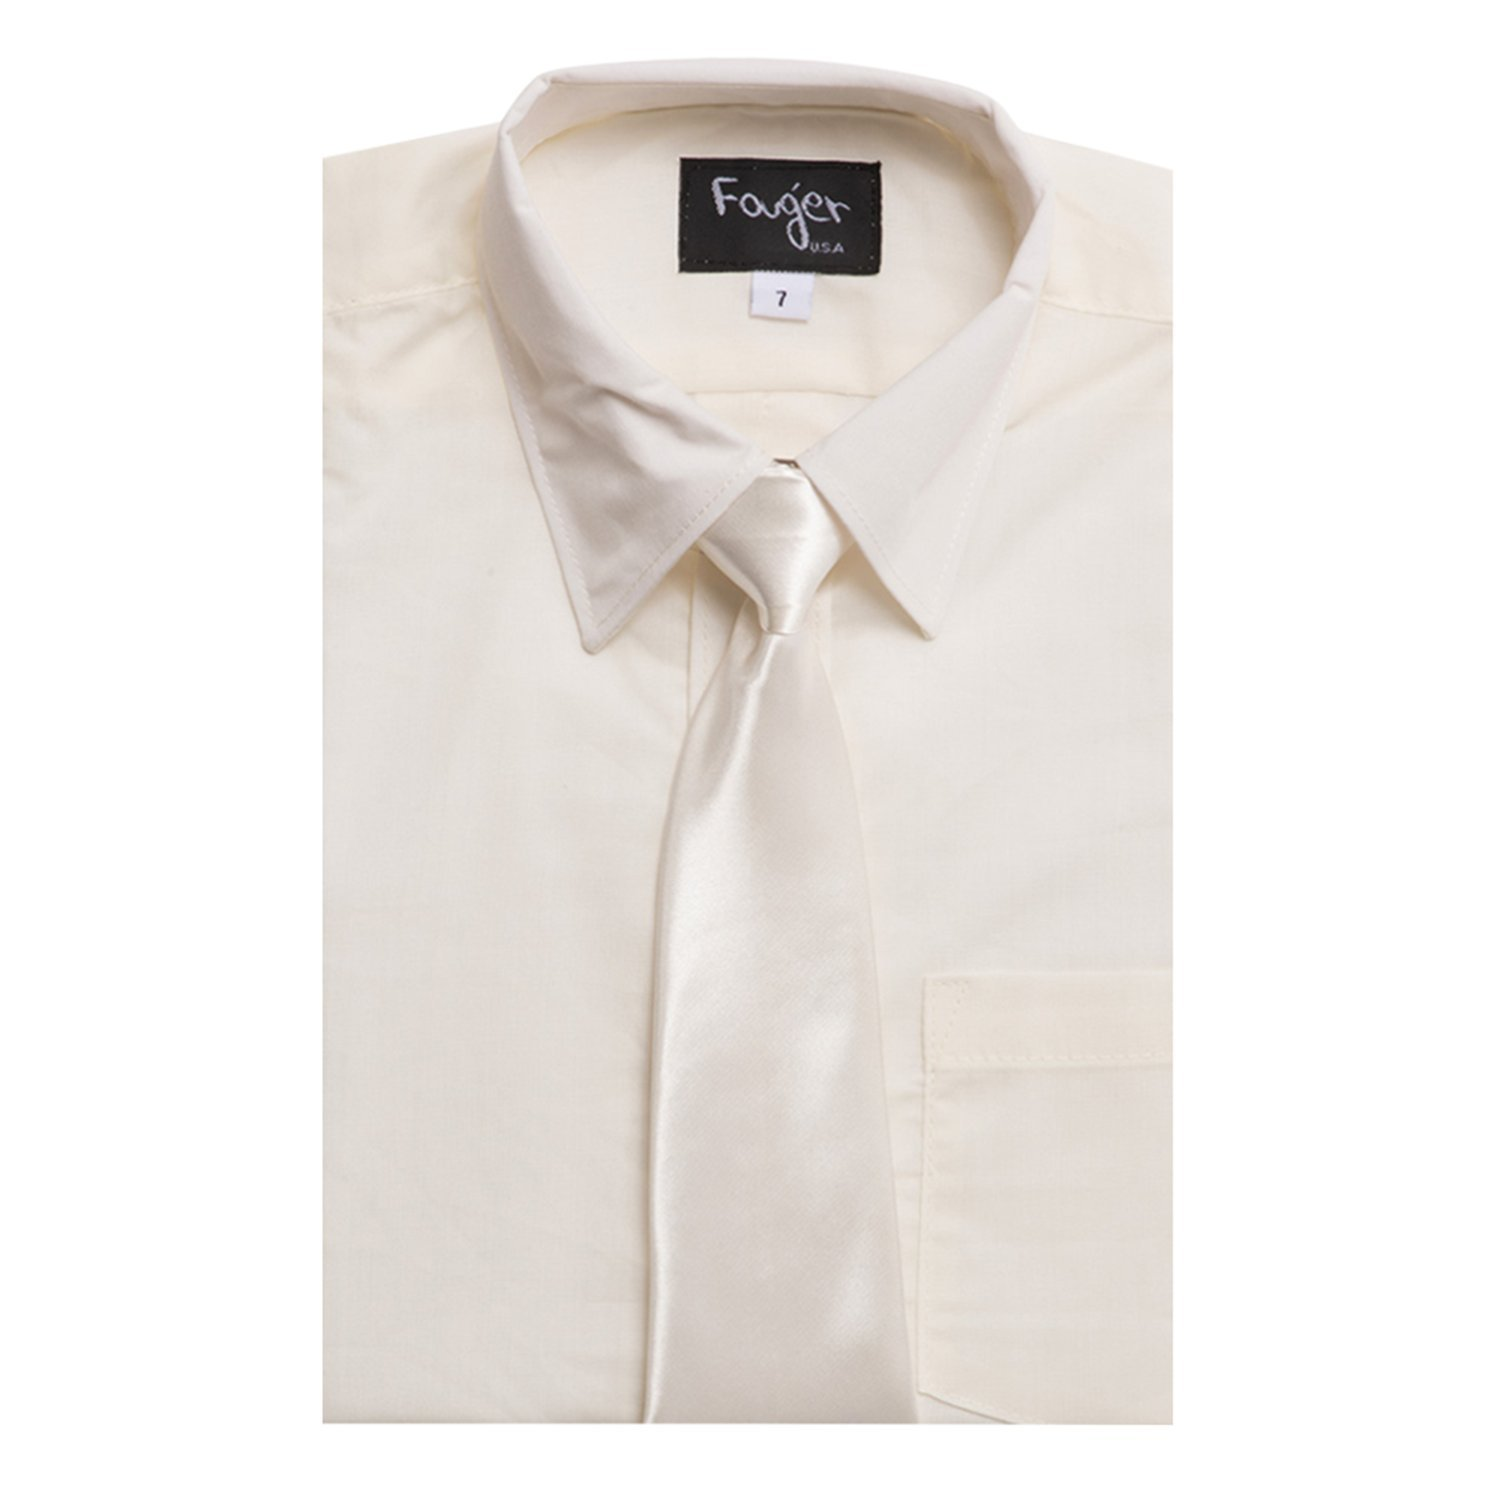 Fouger Boys Solid Long Sleeve Dress Shirt with Solid Tie - Ivory/10